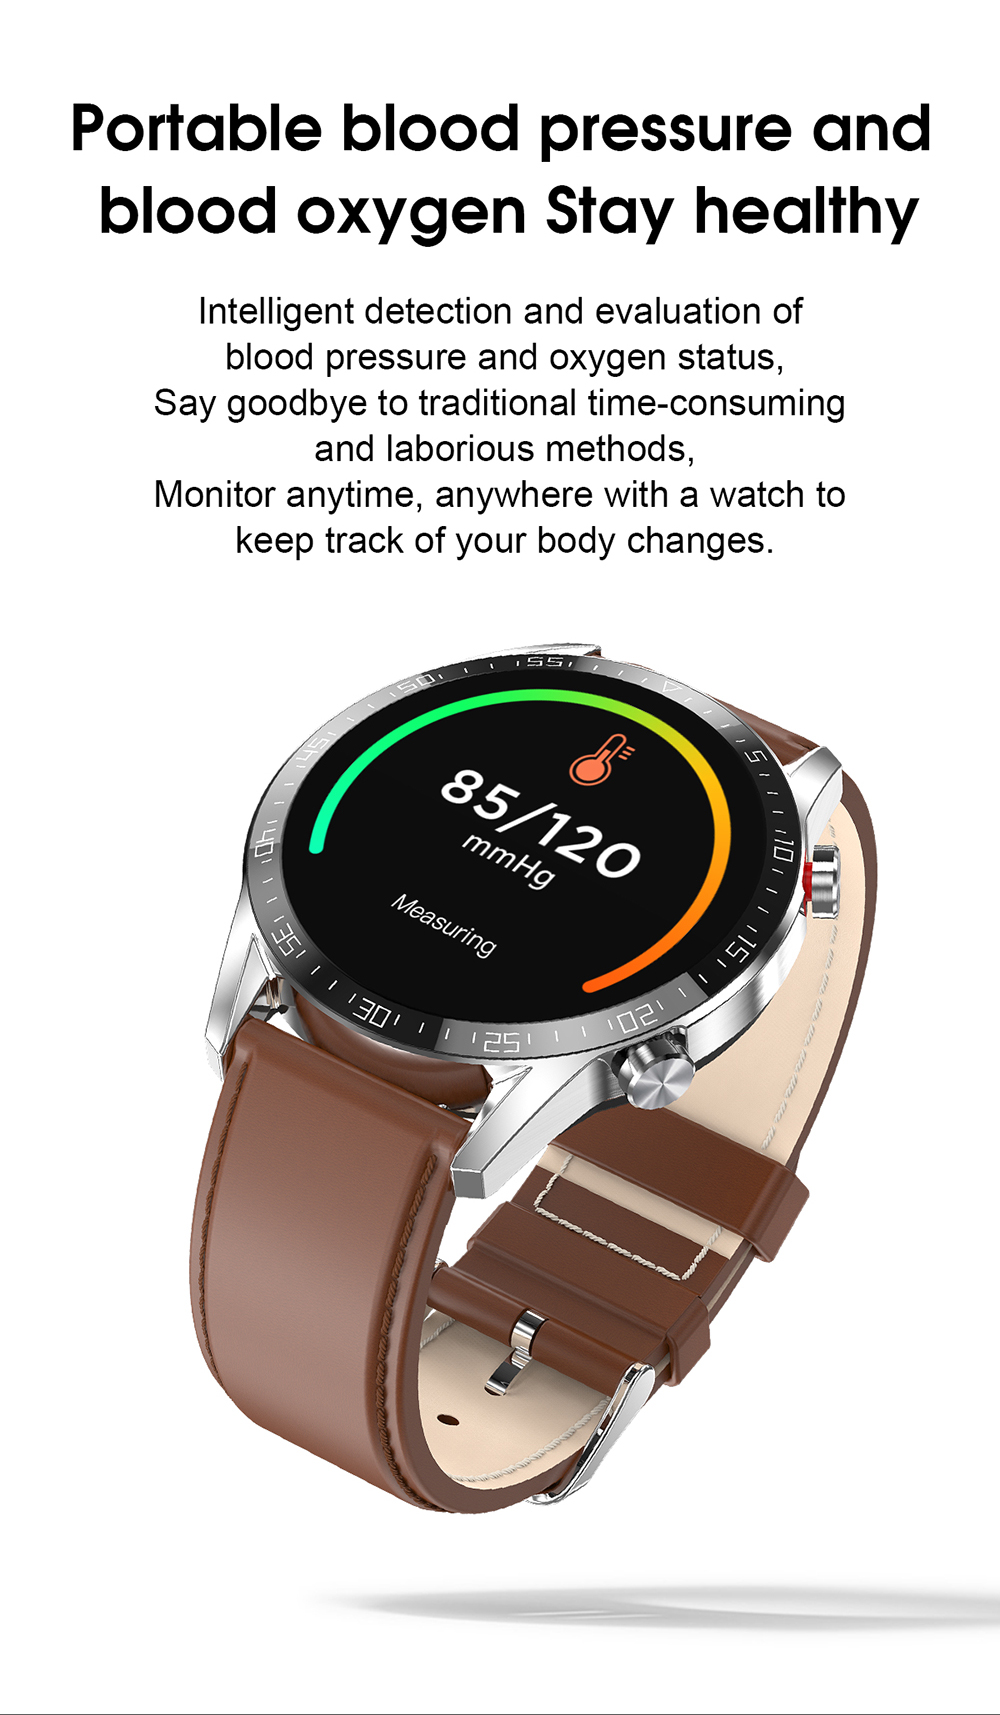 H1fc2d3989f0d4227b1f17d8d932afab4S Reloj Inteligente Hombre Smart Watch Men 2020 Android IP68 Smartwatch Answer Call Smart Watch Man For Huawei Android Apple Phone